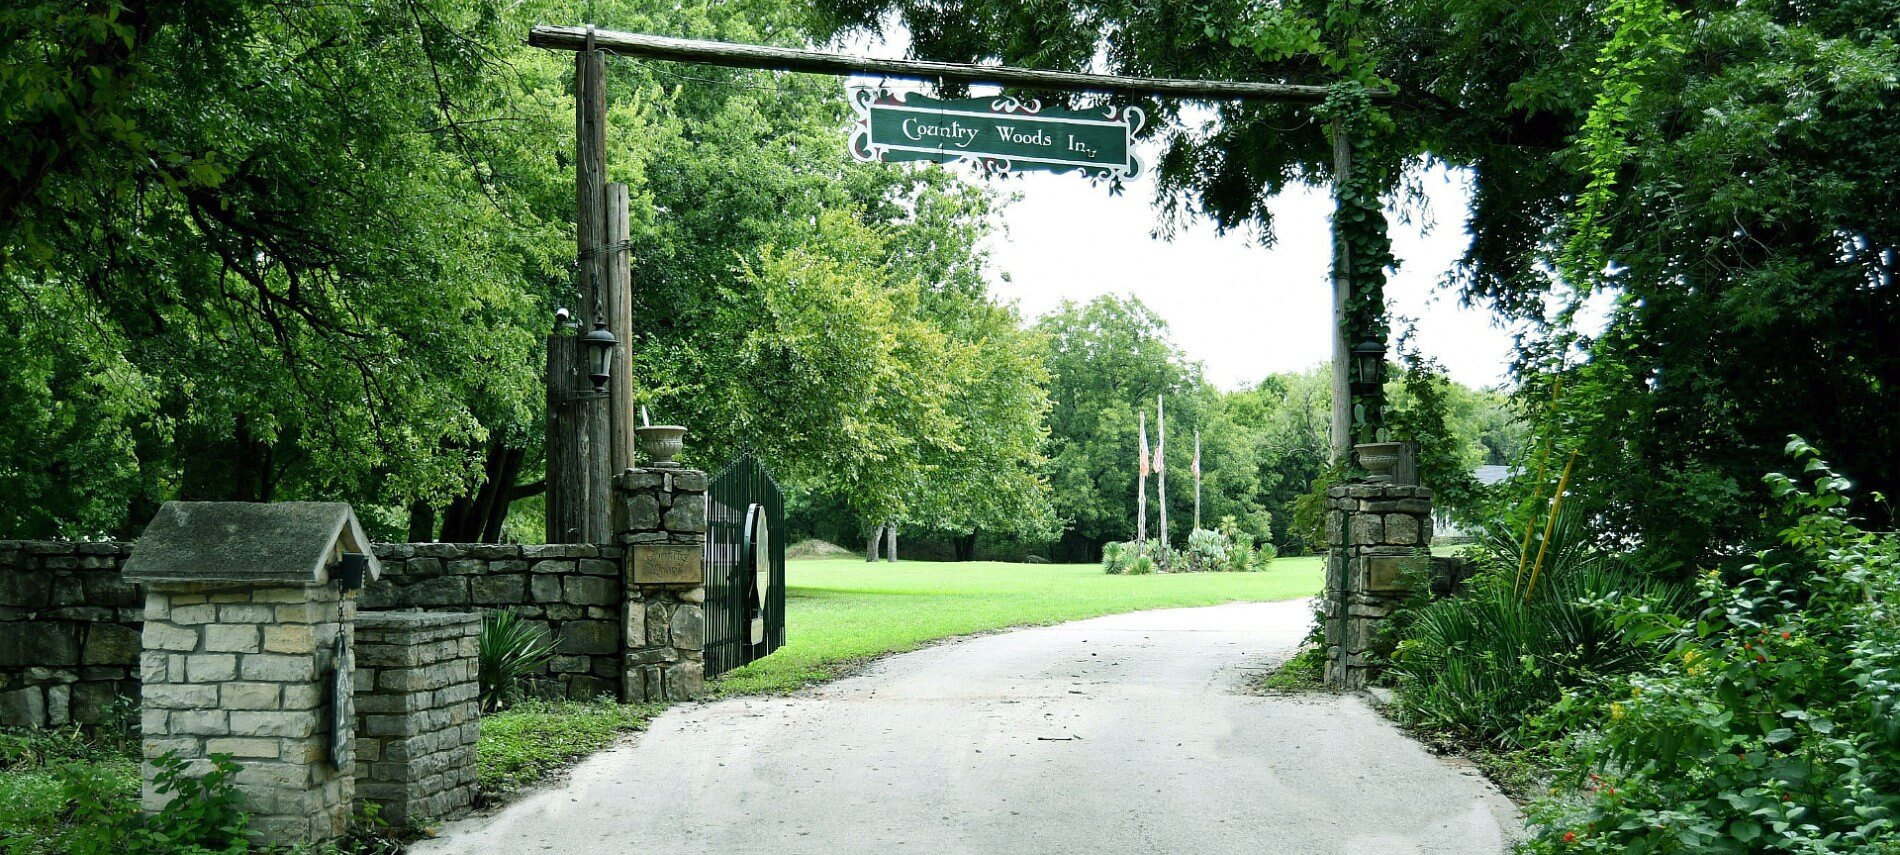 A country road surrounded by green trees leading to a stone entrance with a sign on a tall overhead wooden post.